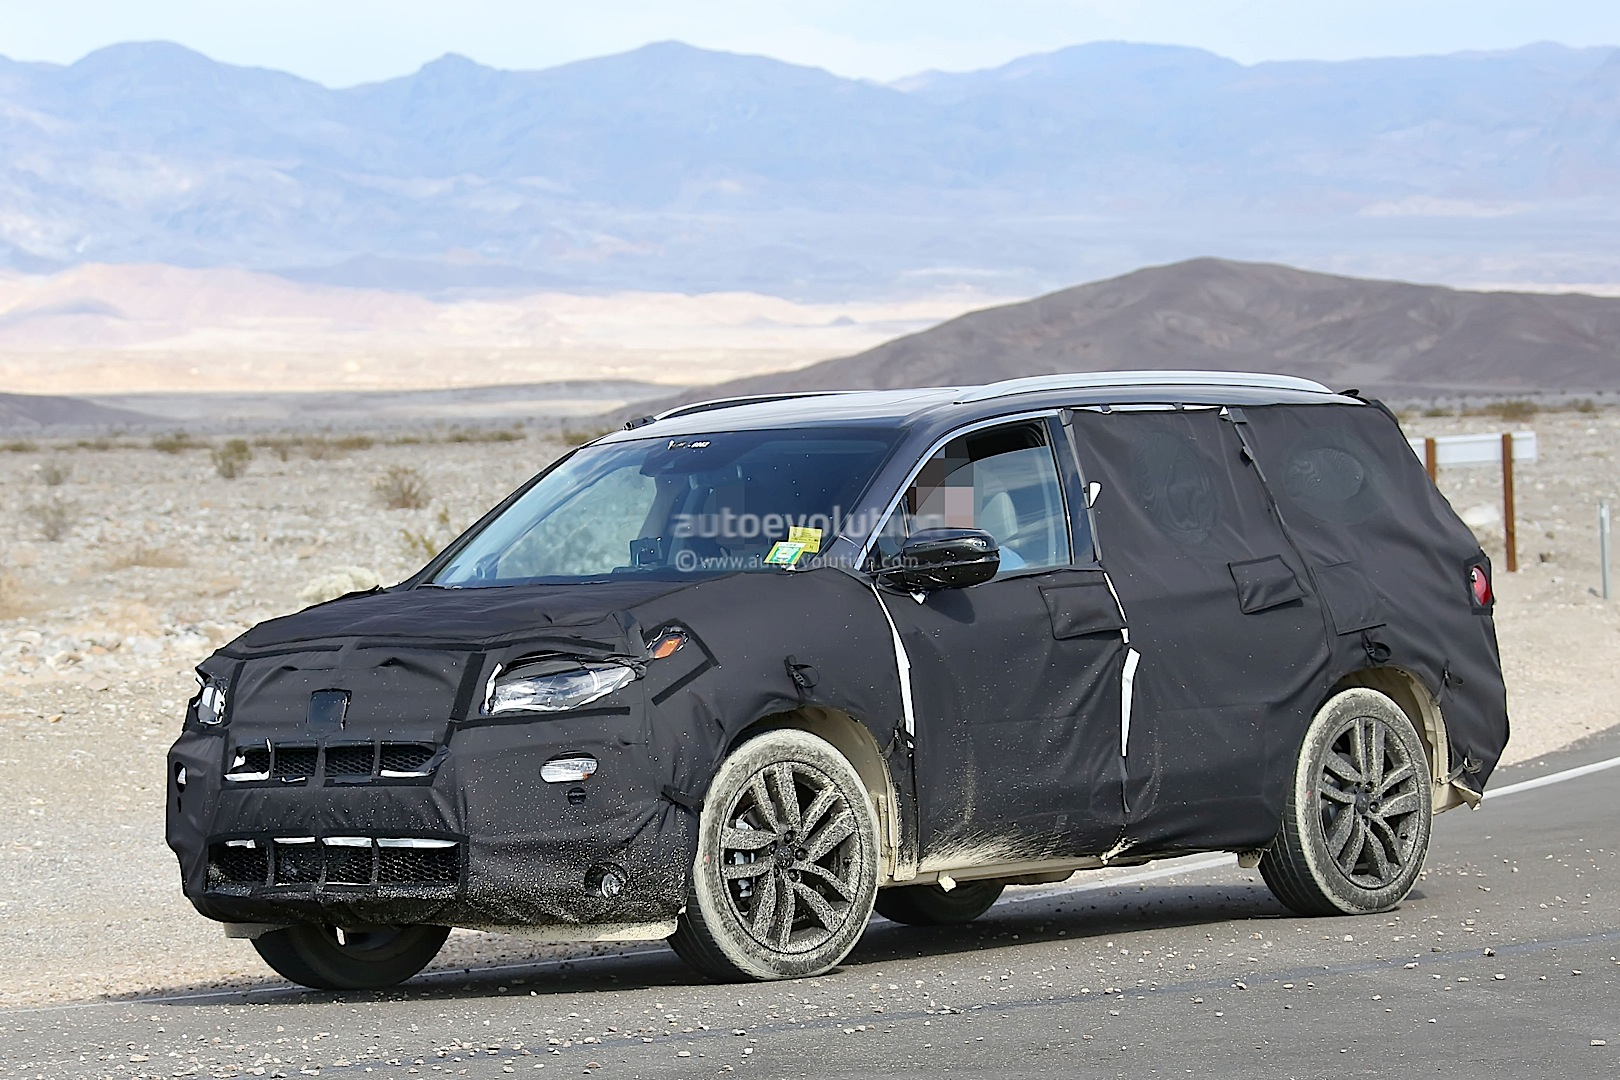 2016 honda pilot spied testing in the desert autoevolution. Black Bedroom Furniture Sets. Home Design Ideas